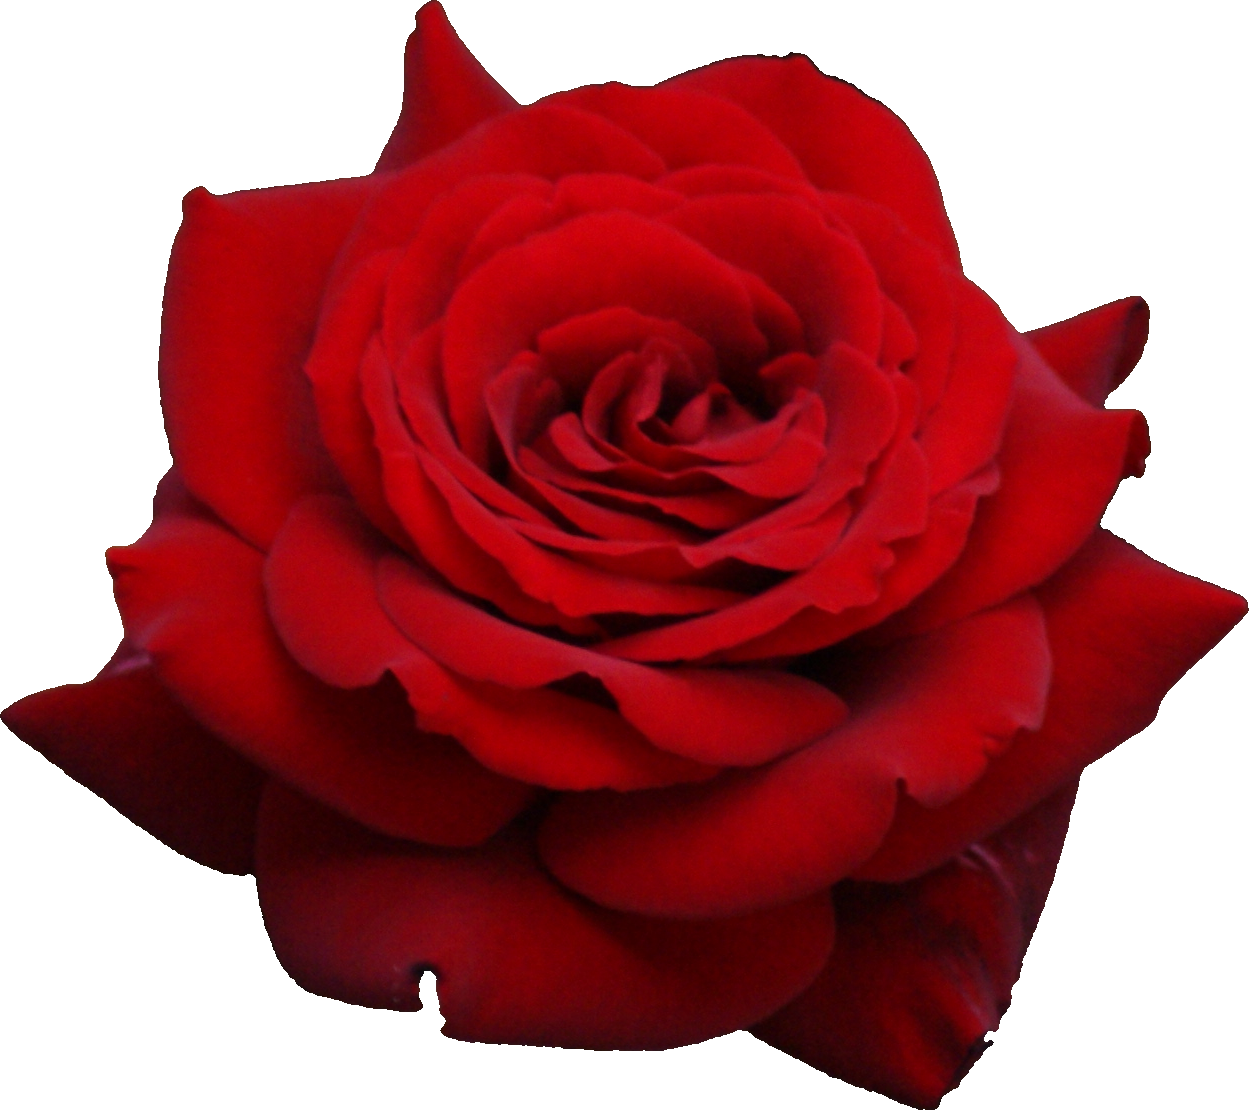 Red rose png image, free picture download - Rose PNG